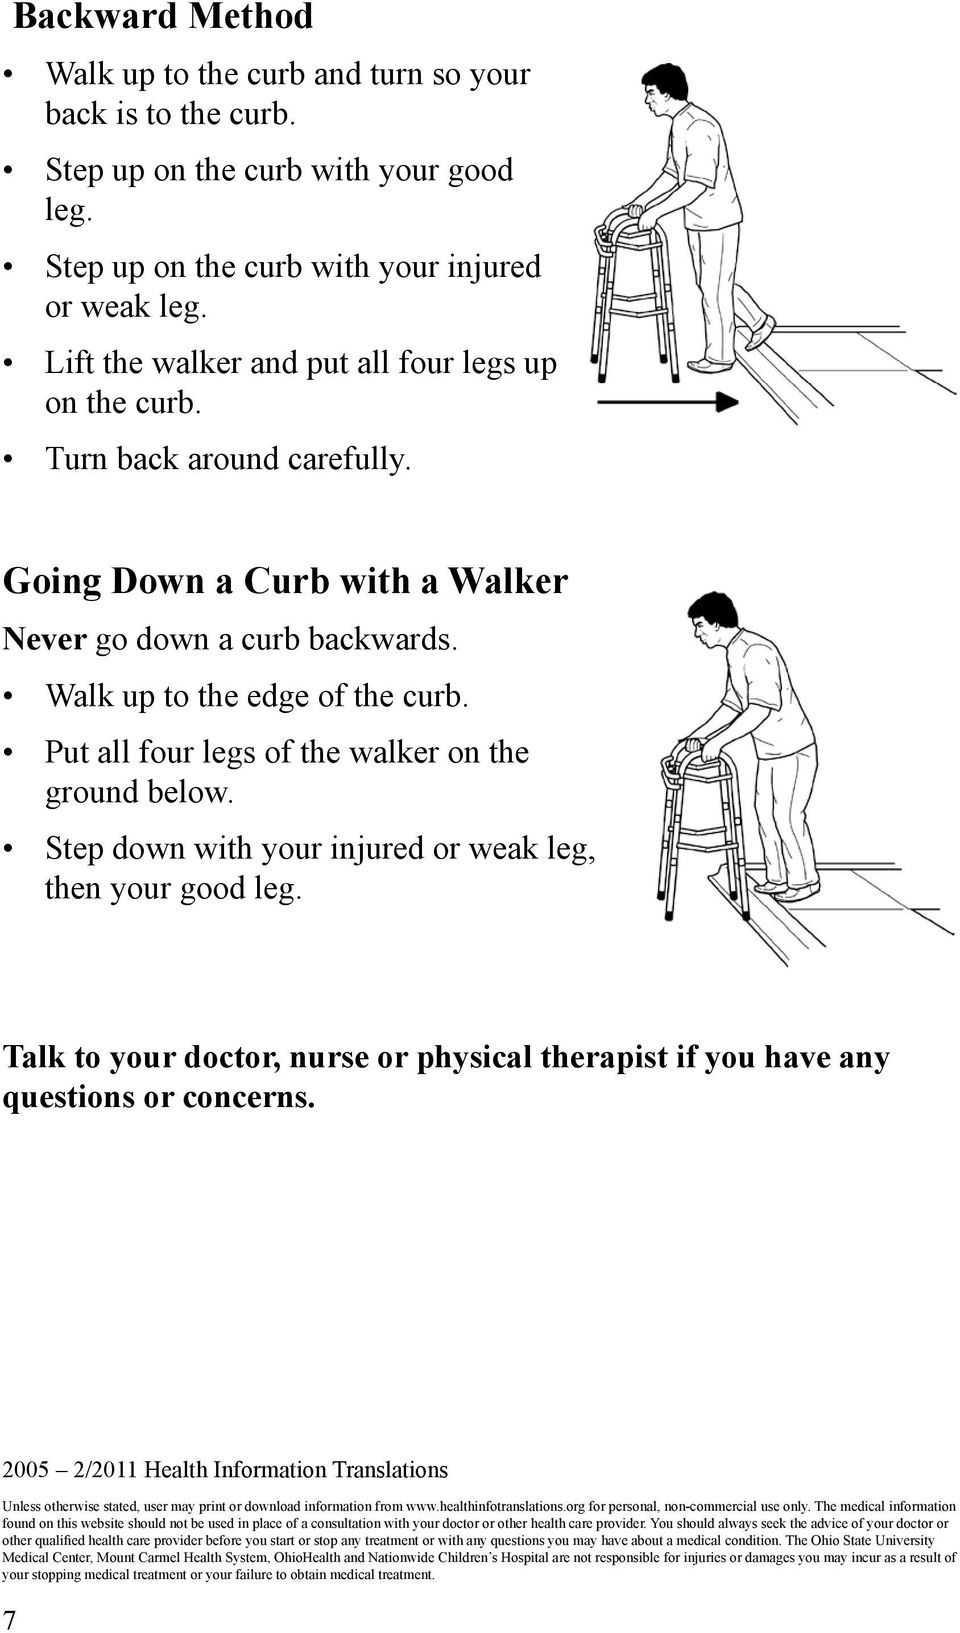 Put all four legs of the walker on the ground below. Step down with your injured or weak leg, then your good leg.